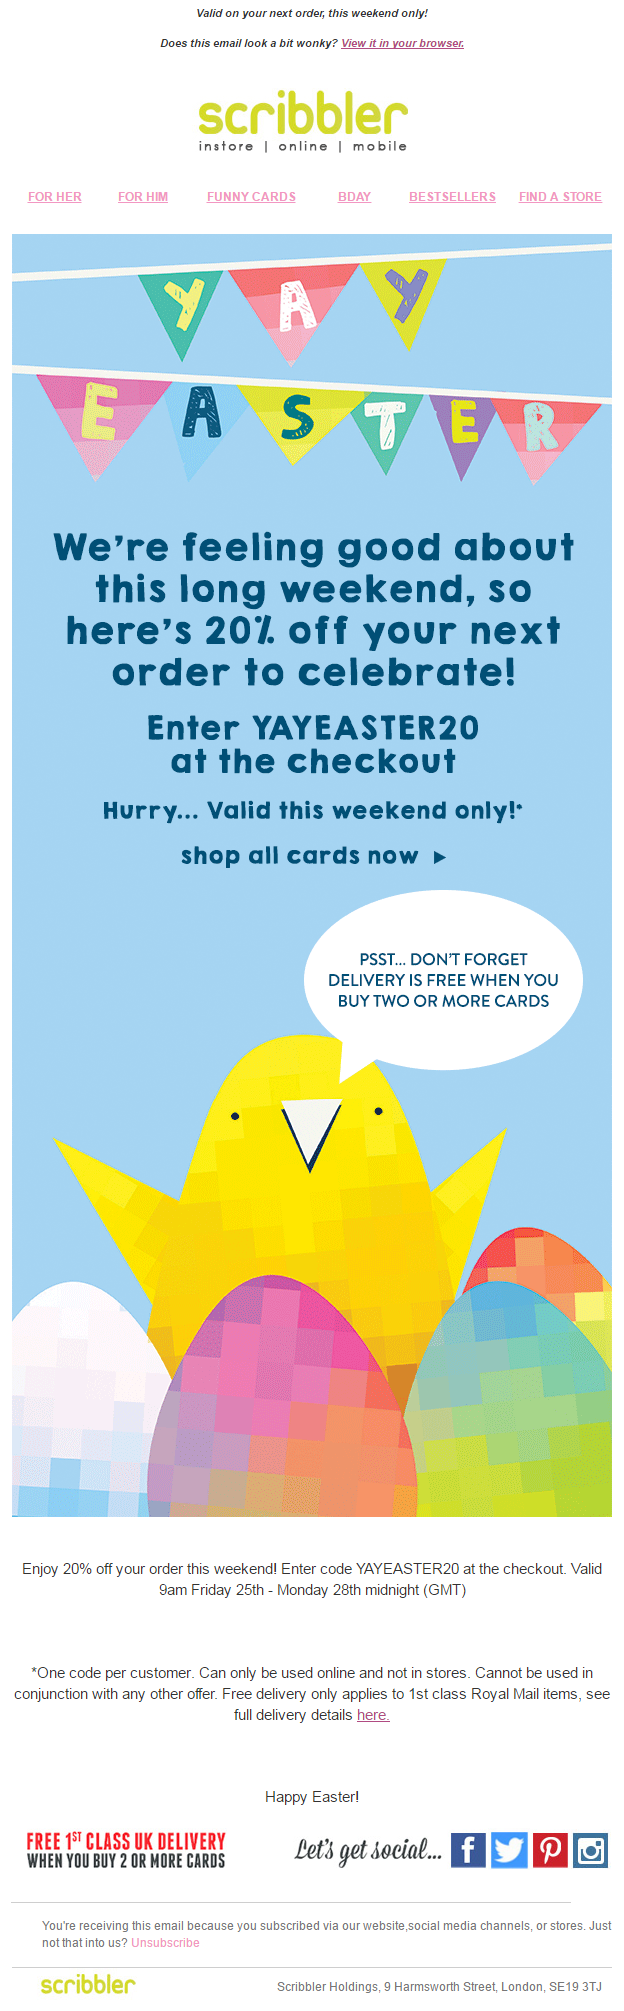 Easter offer email from scribbler with coupon code email marketing easter offer email from scribbler with coupon code email marketing emailmarketing easter negle Gallery